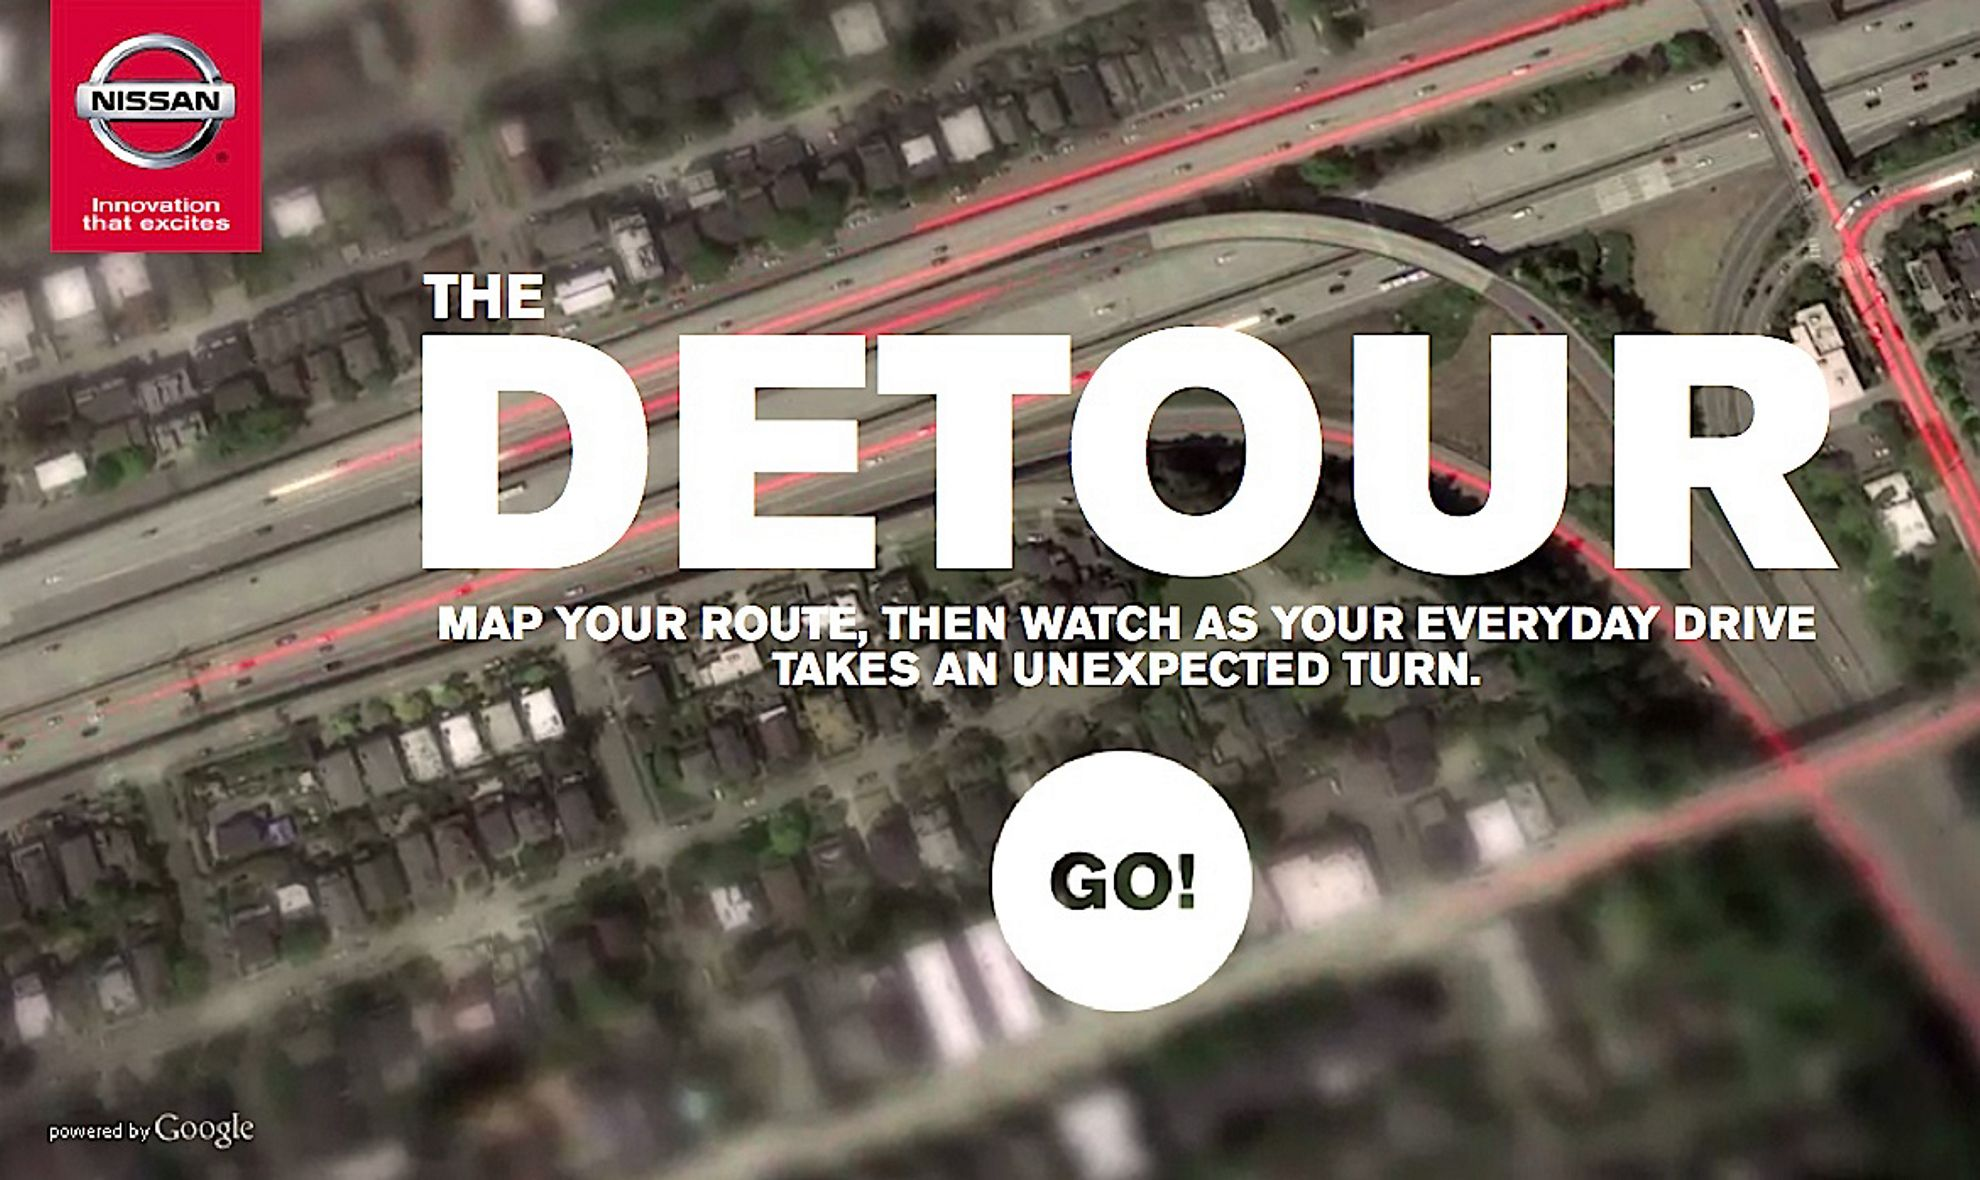 #TakeTheDetour